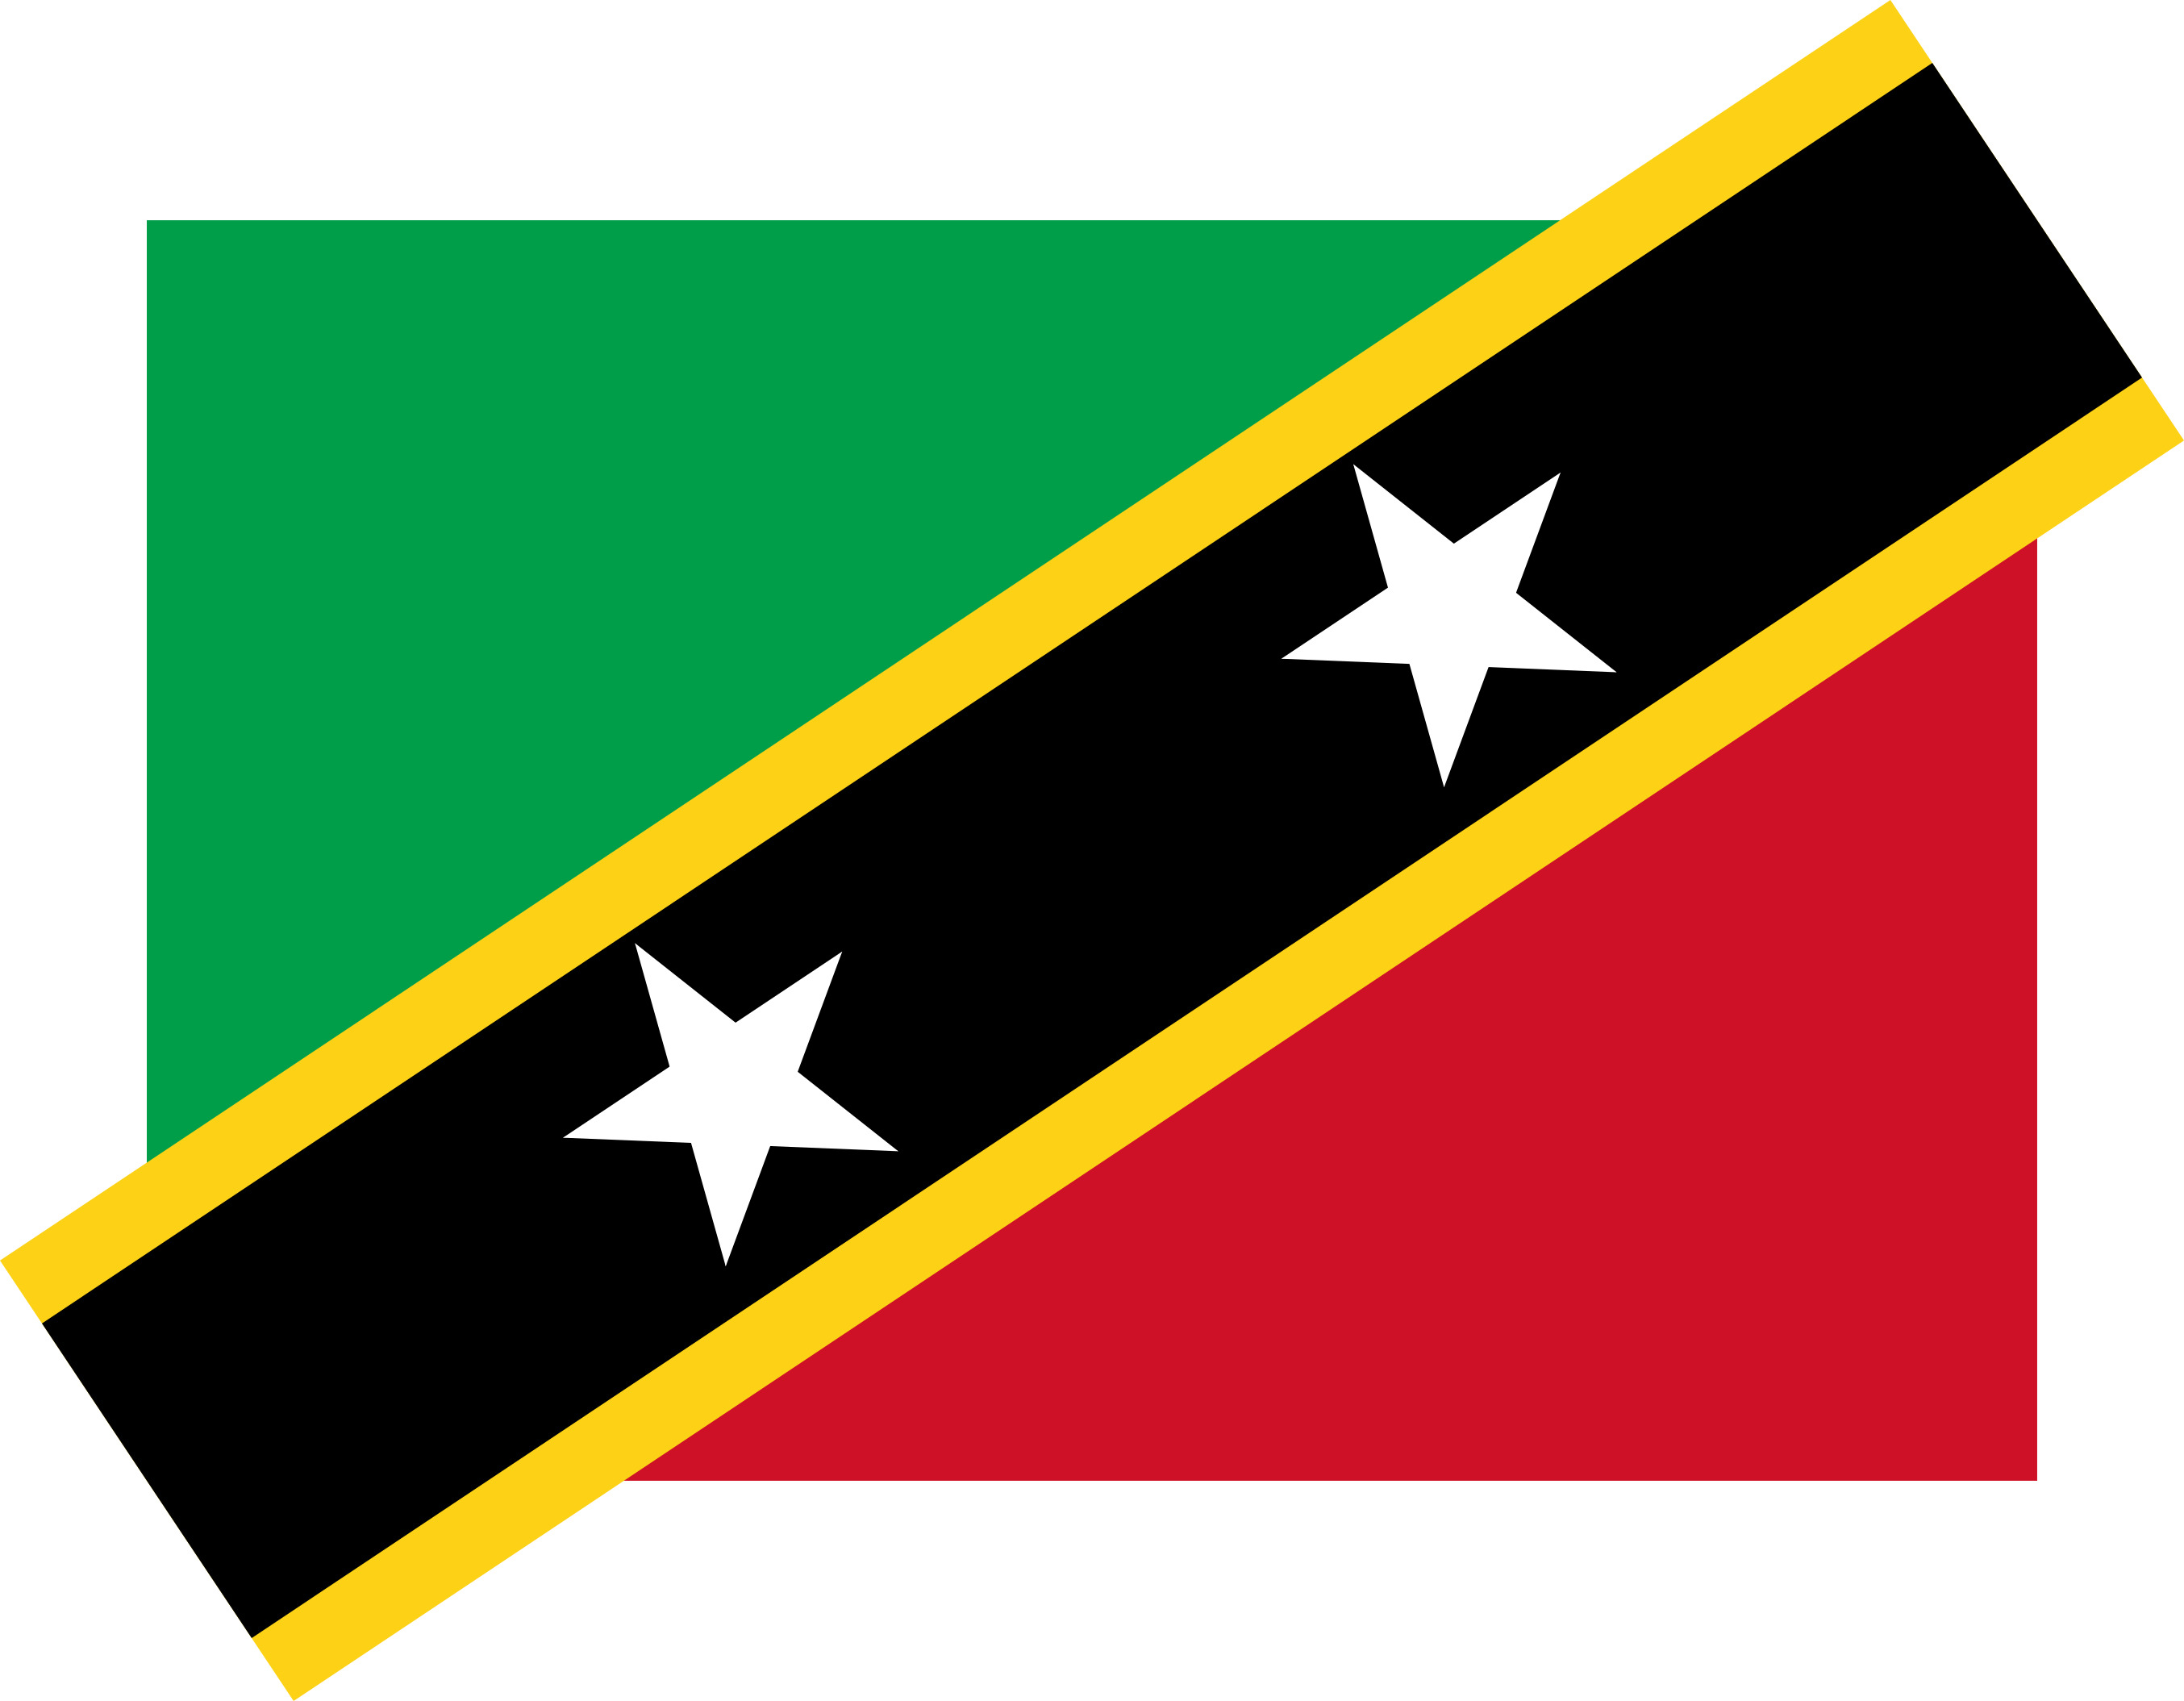 Saint_Kitts_and_Nevis Flag Colours